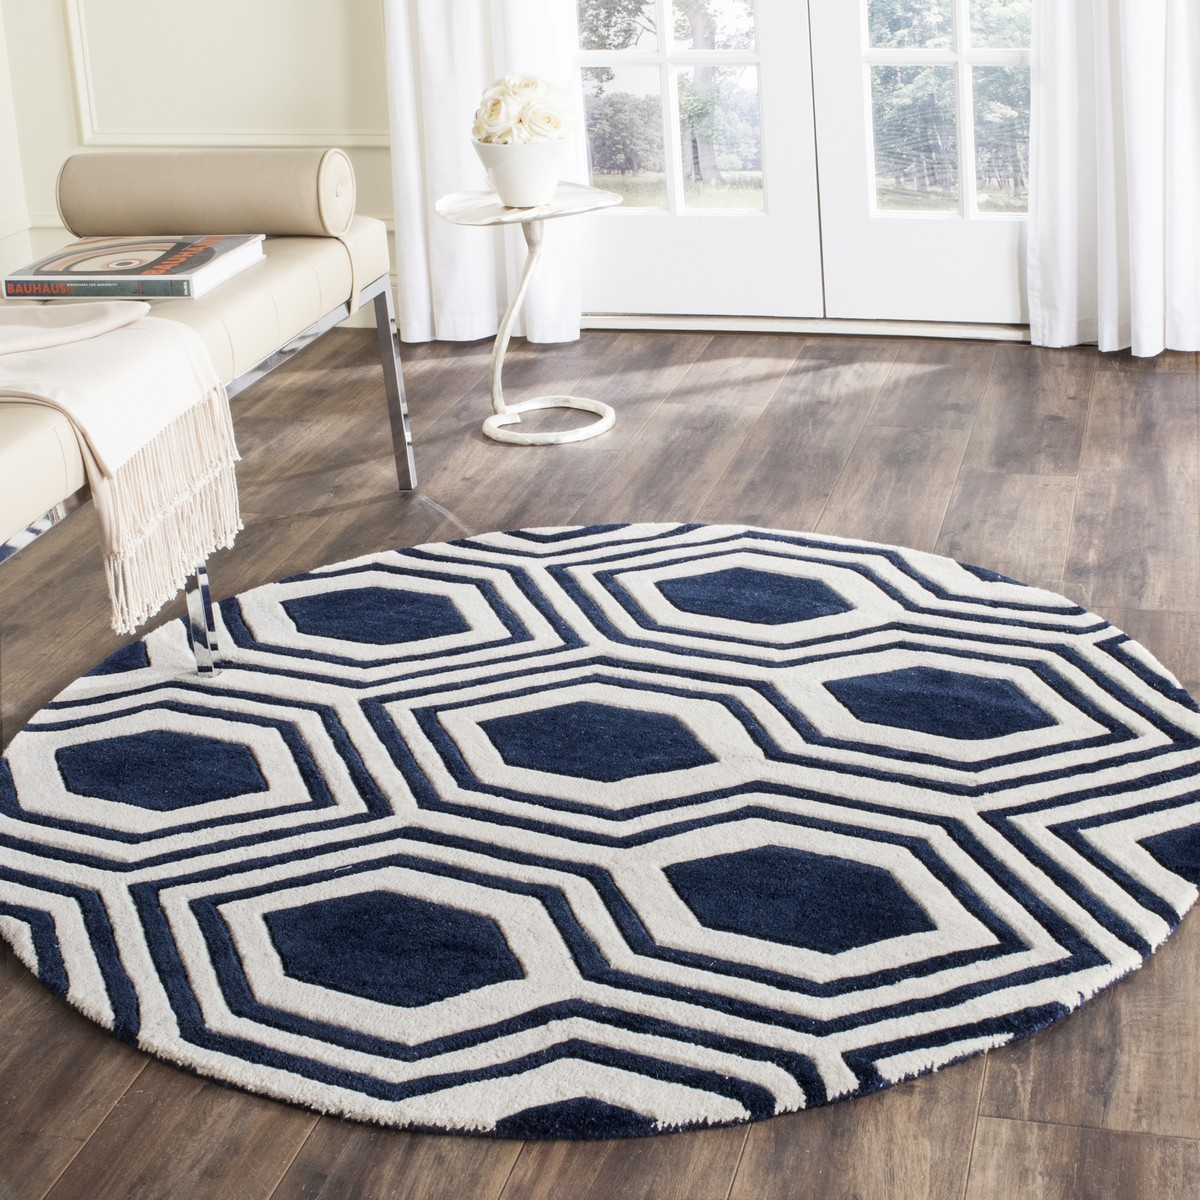 Rug Cht760c Chatham Area Rugs By Safavieh